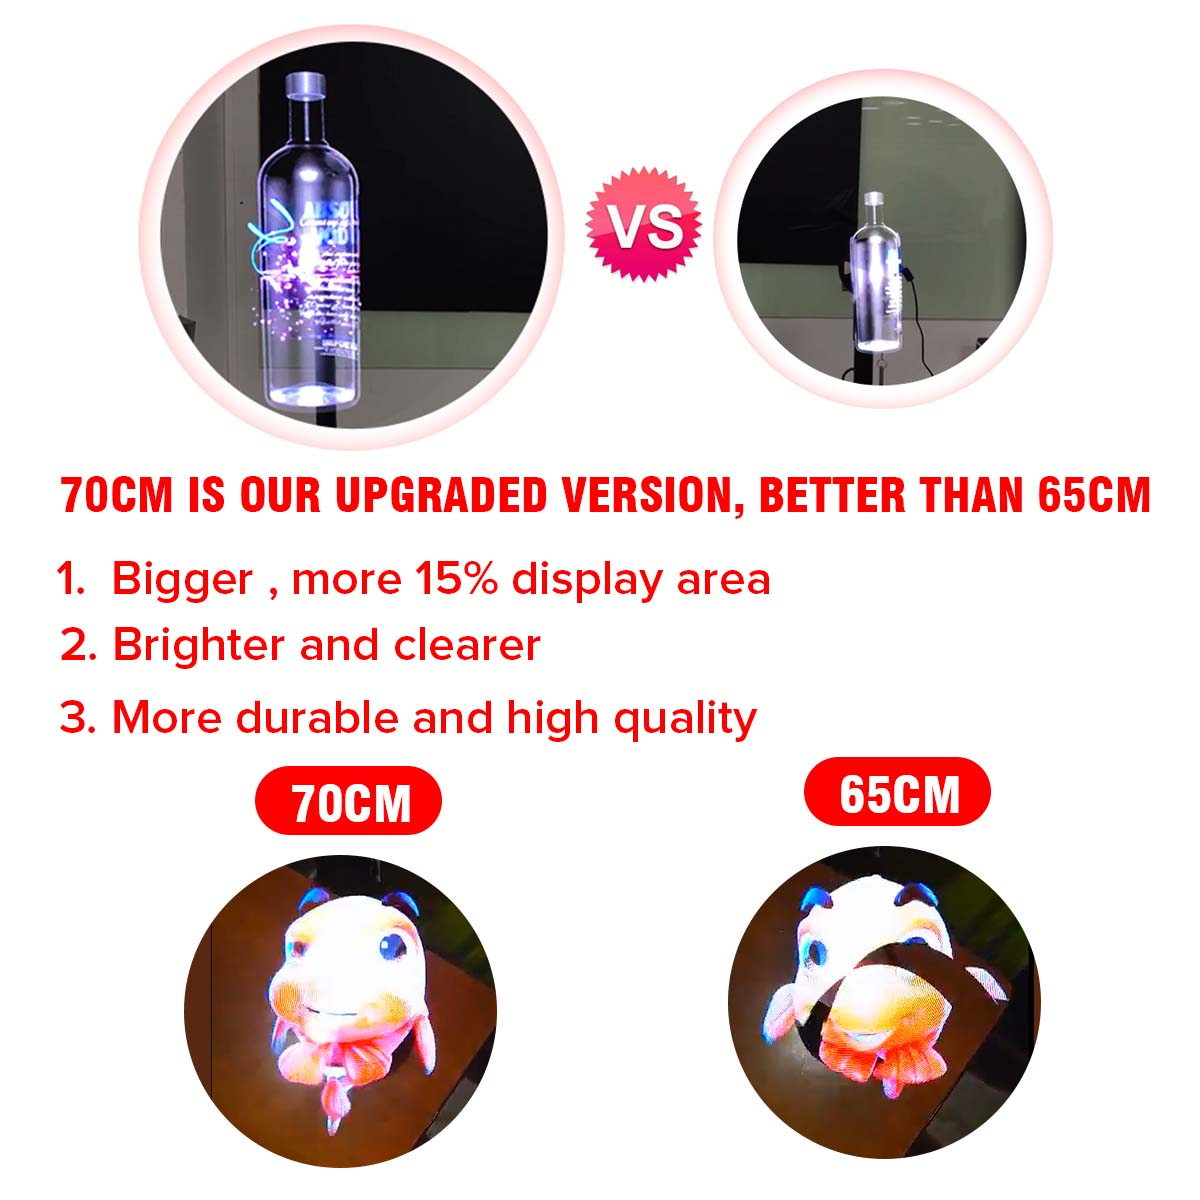 70cm 3D Holographic Sight Projector Fan Display WIFI LED Hologram Player Lamp Image